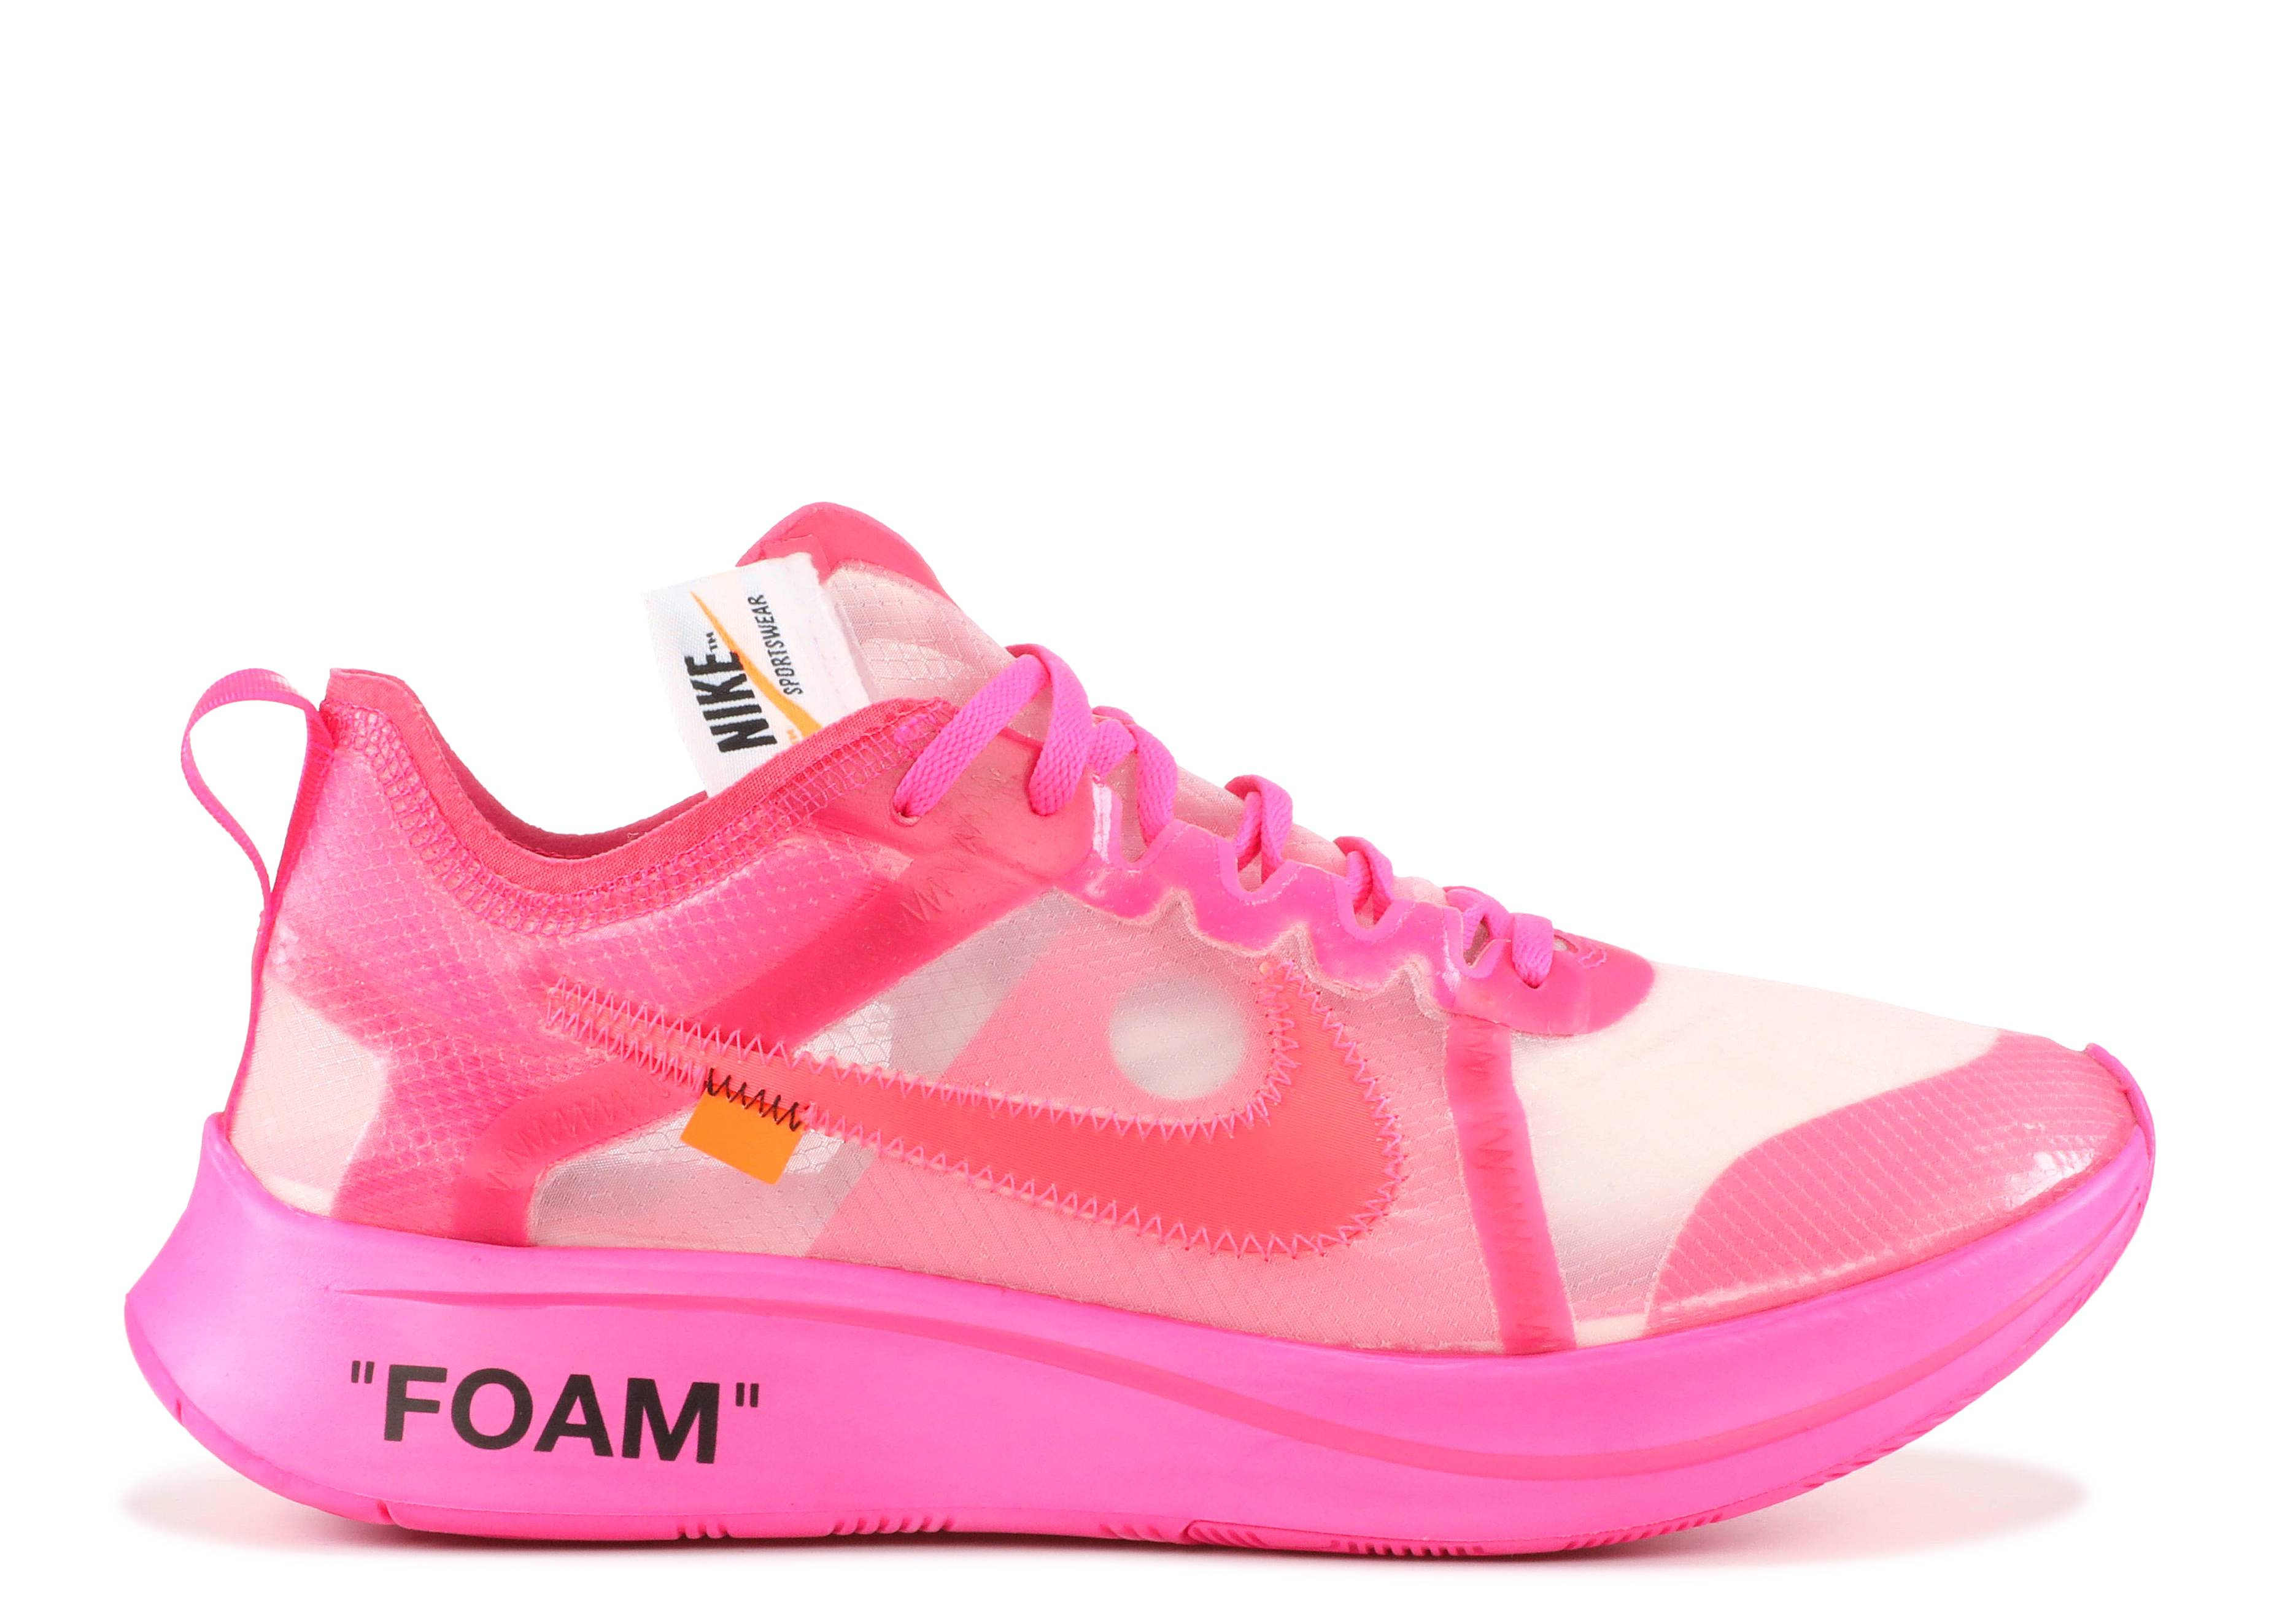 Caballero amable Incitar oficina postal  Off White X Zoom Fly SP 'Tulip Pink' - Nike - AJ4588 600 - tulip pink/racer  pink | Flight Club